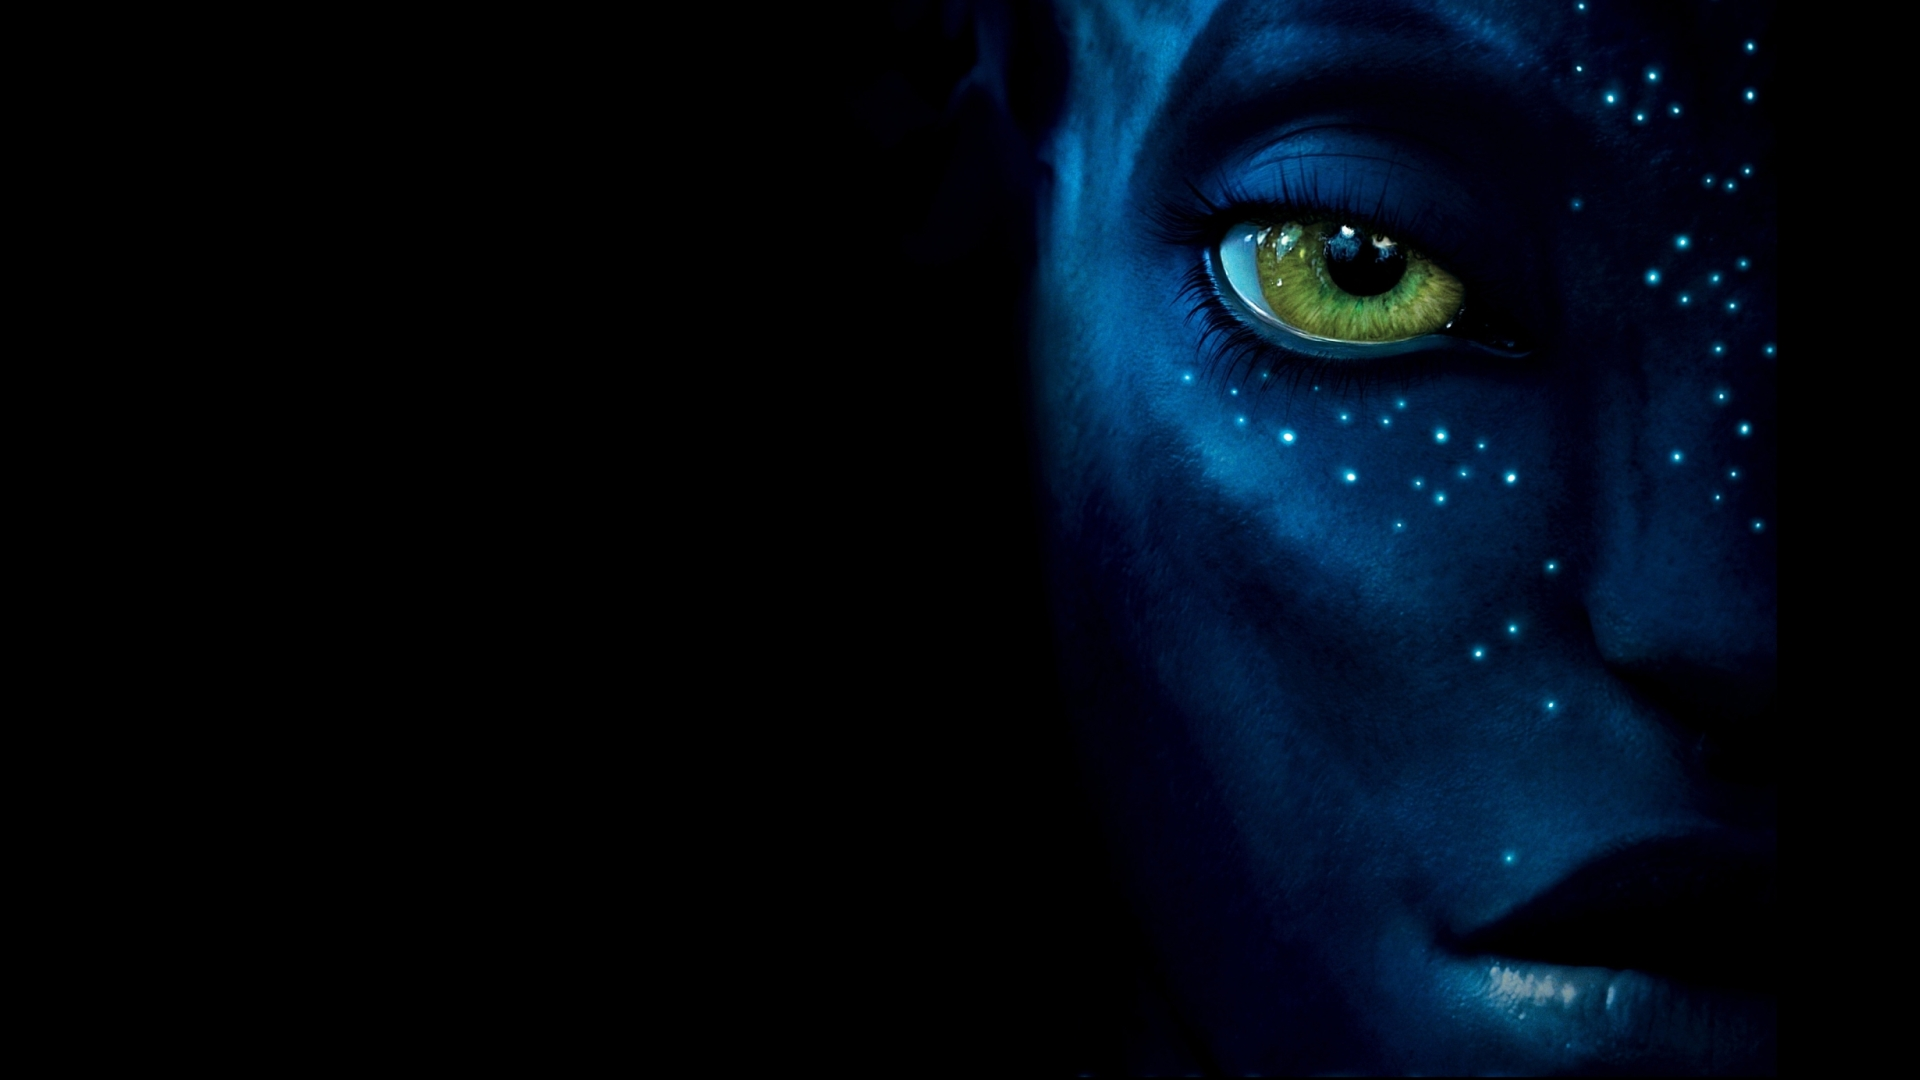 avatar film essay (naturalnews) if you see just one film this holiday season (or even this year), make it james cameron's avatarit's a powerful, inspiring film that demonstrates movie-making at its best, and it delivers a crucial message for our time: that all living beings are connected and that those who seek to exploit nature rather than respect it will only.